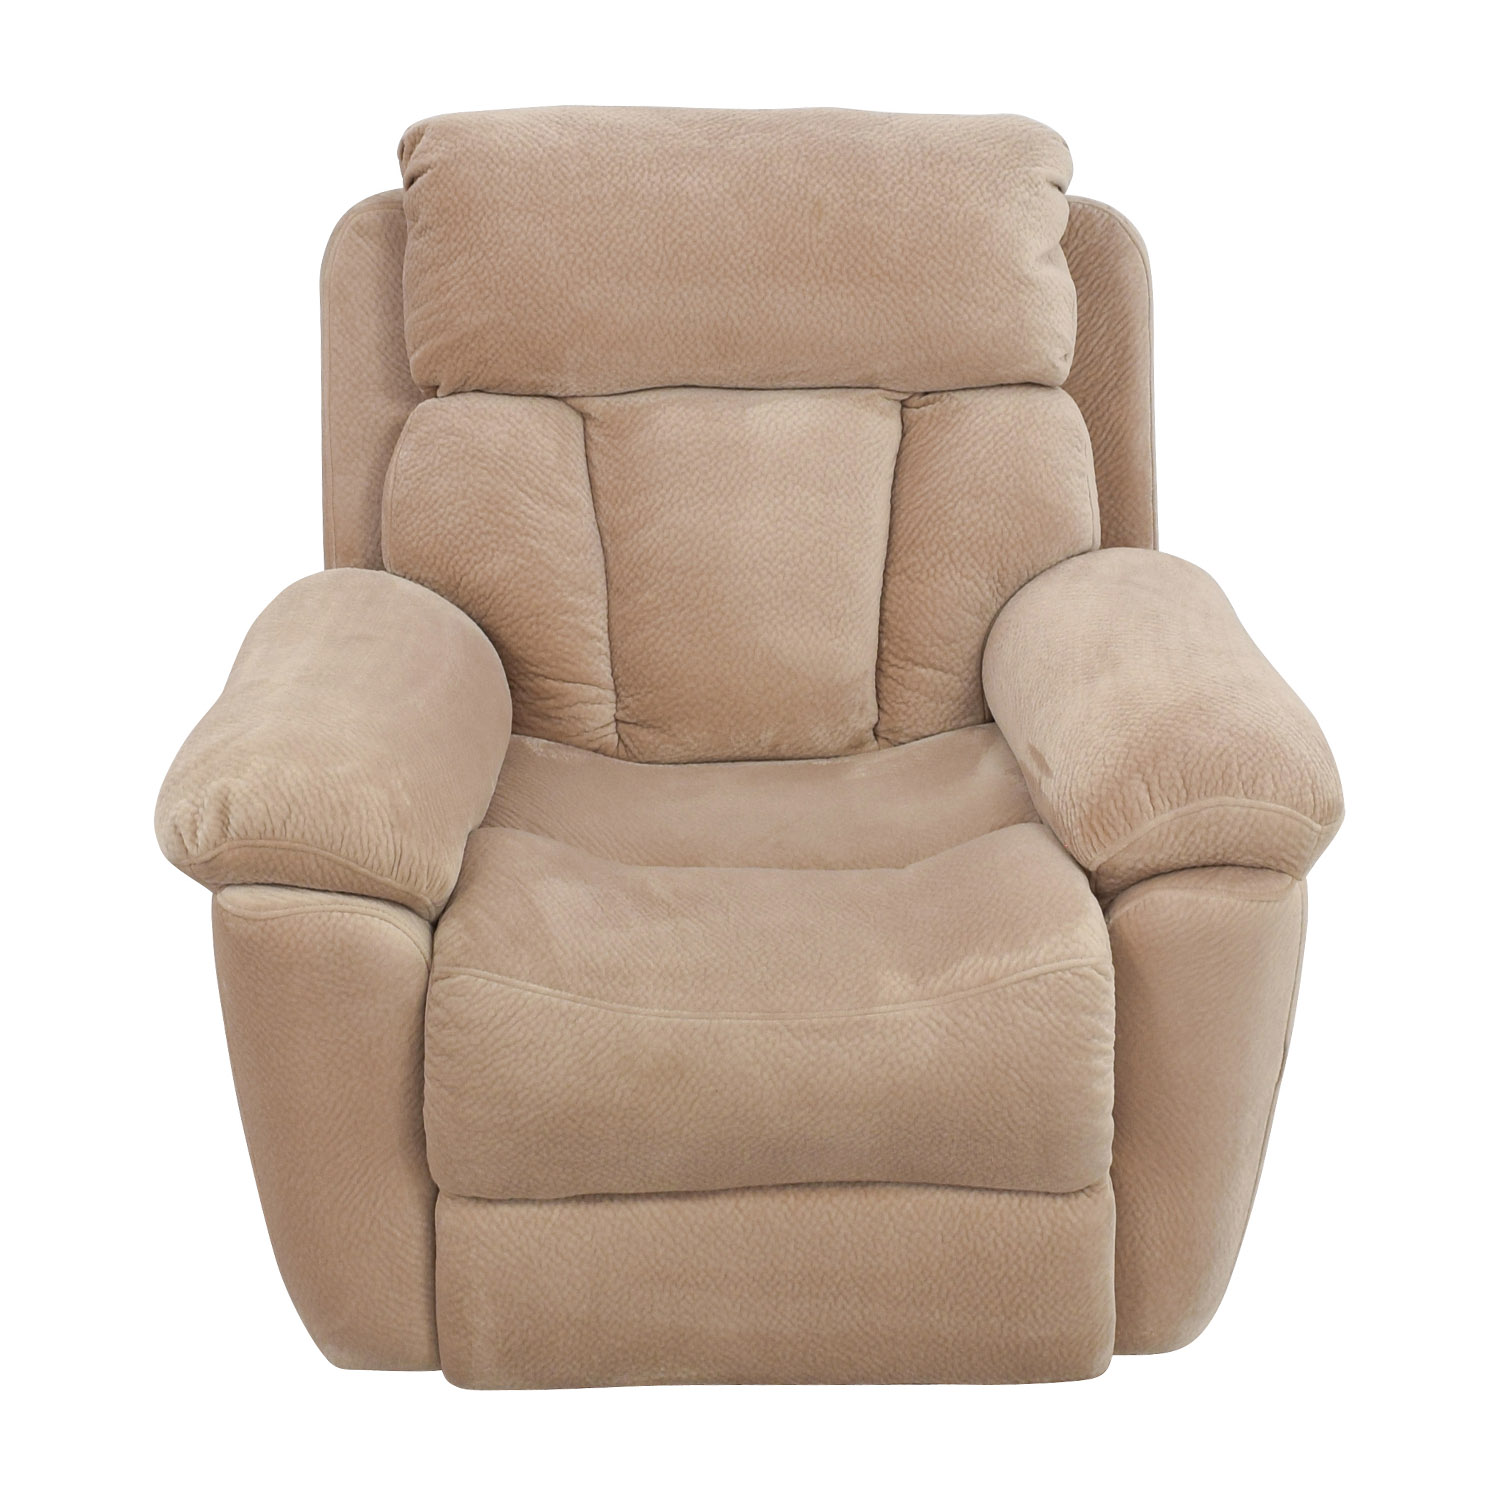 reclining chairs for sale wheelchair sketch luxury recliner rtty1